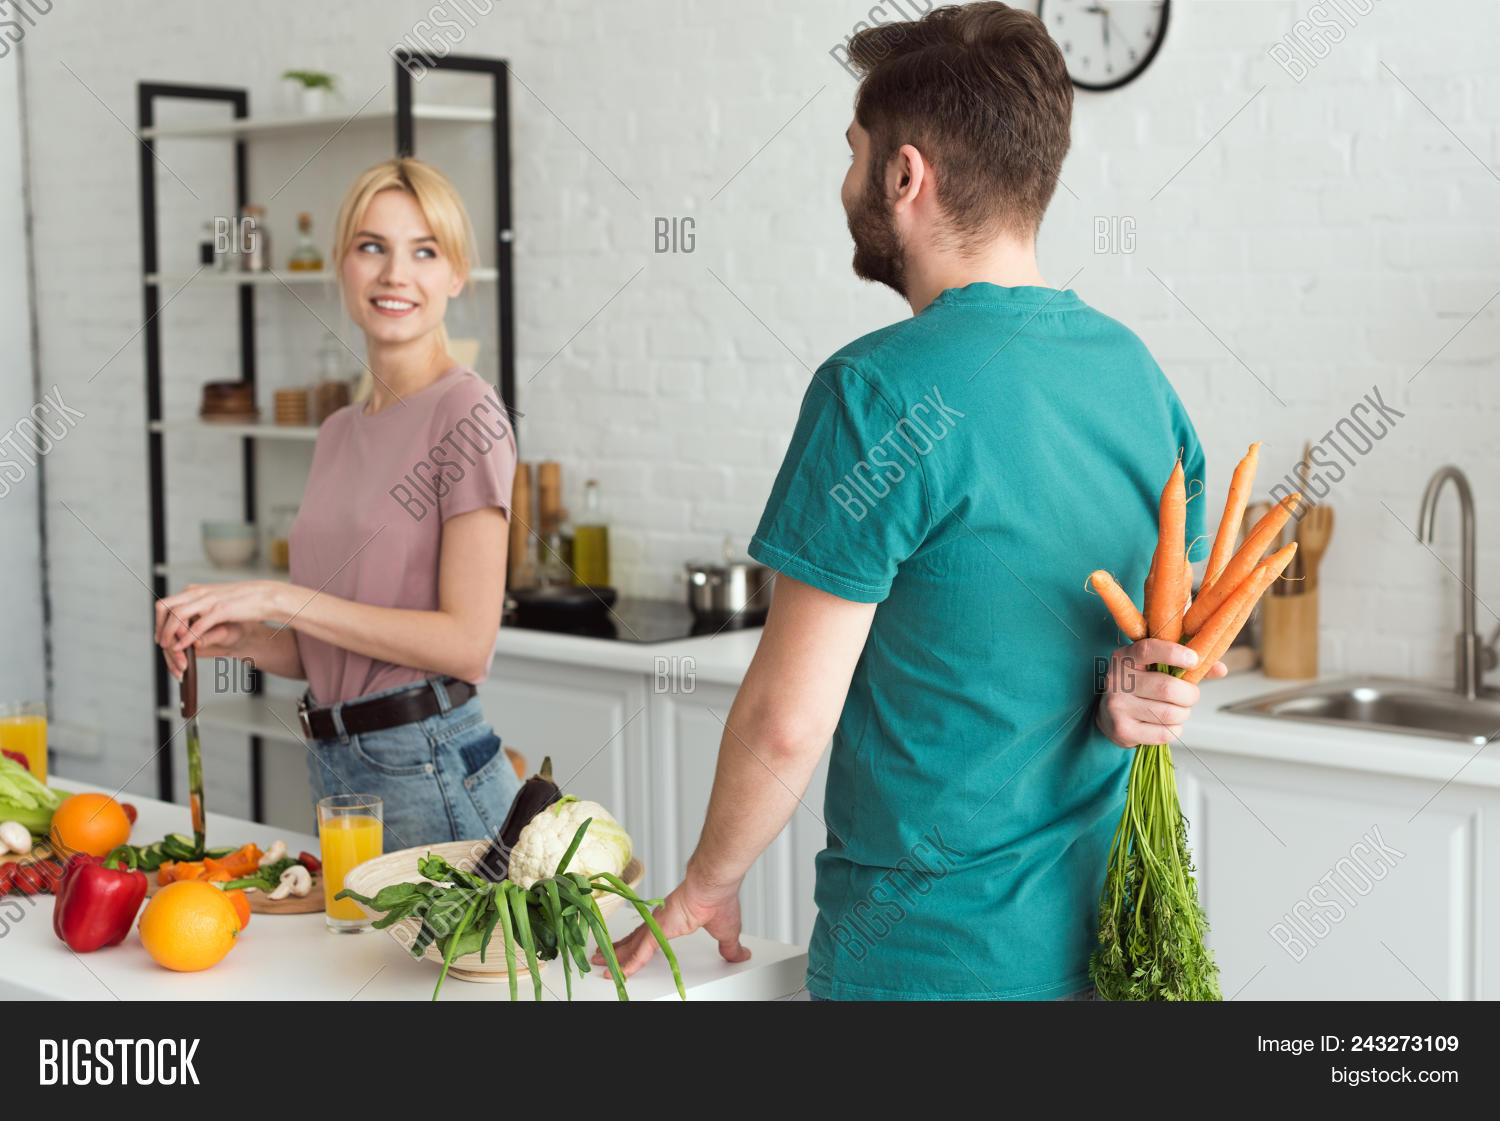 Vegan Boyfriend Hiding Image & Photo (Free Trial) | Bigstock